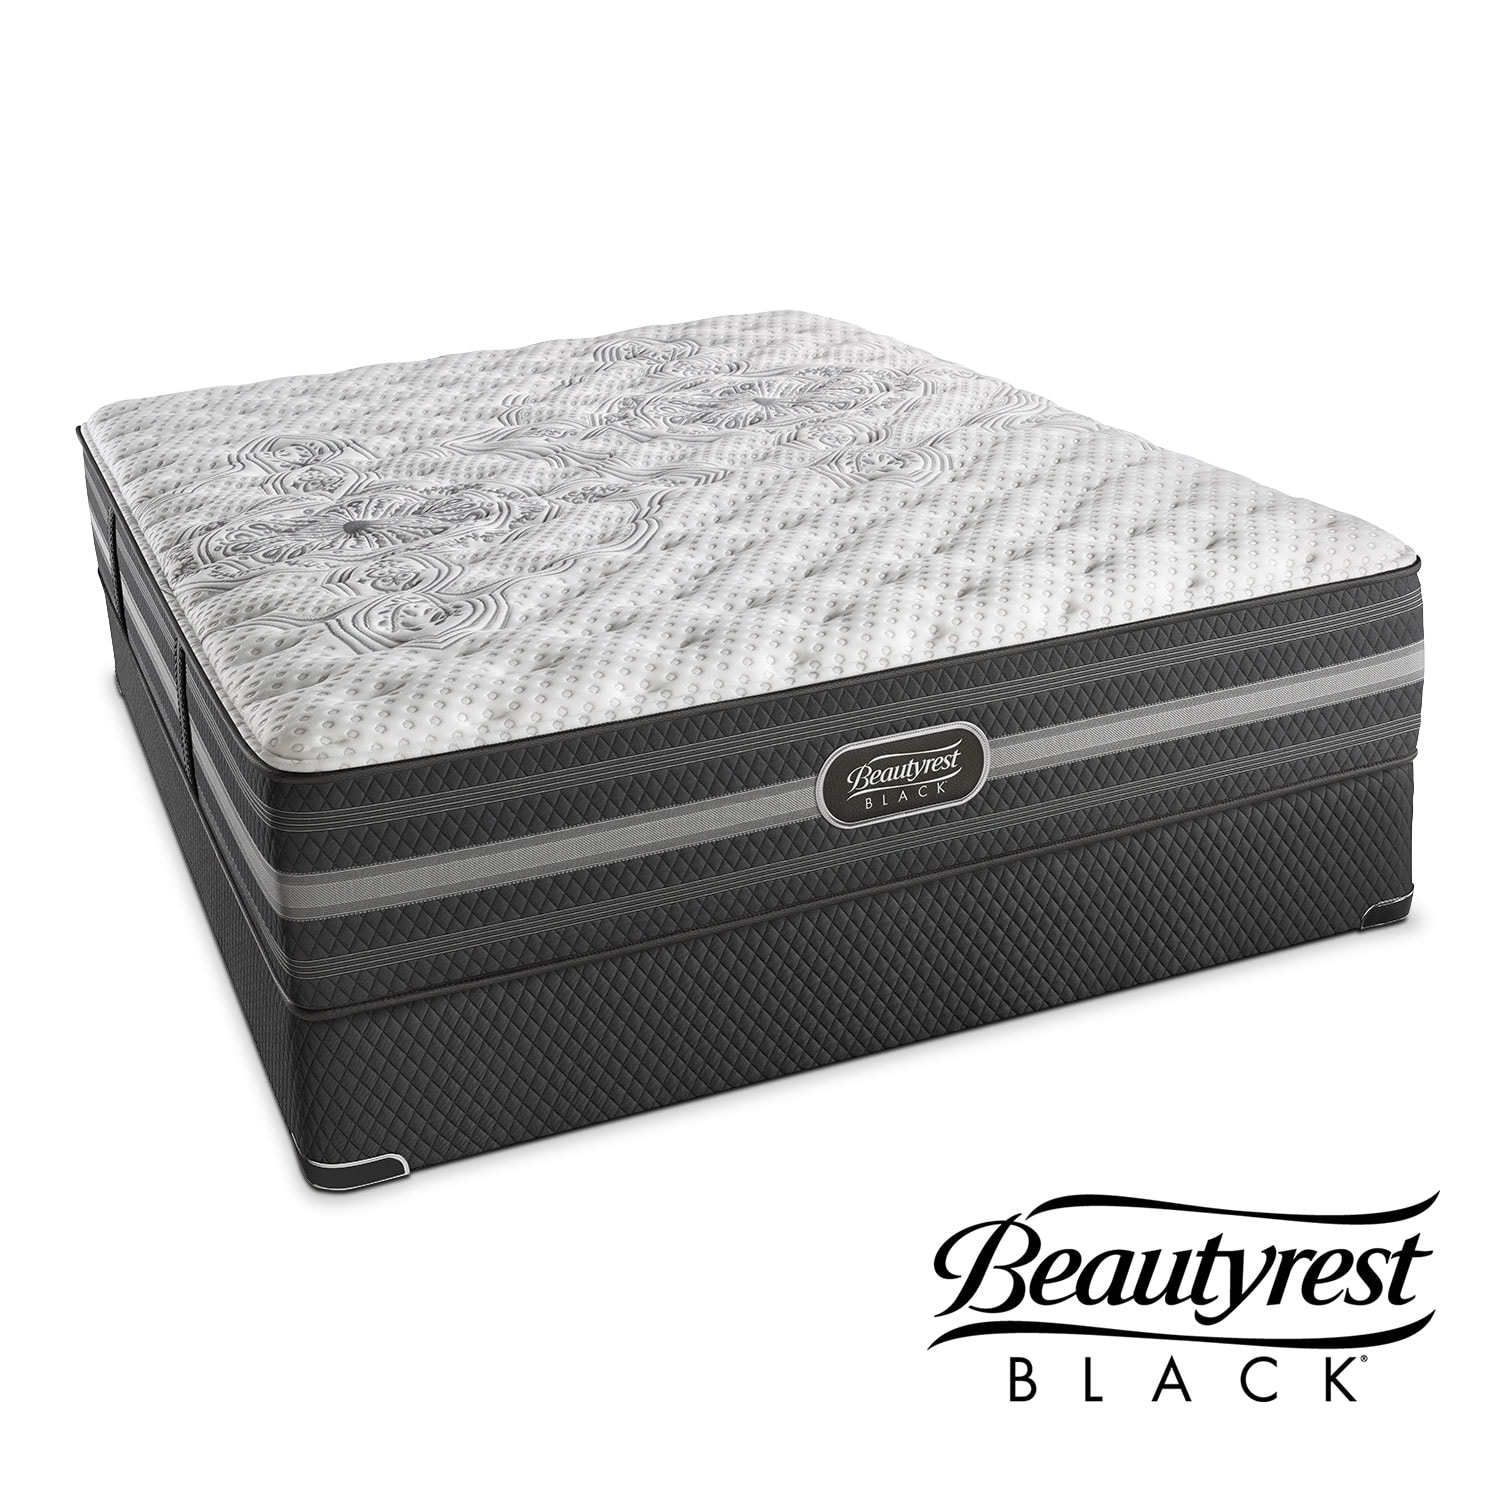 Mattresses and Bedding - Calista Extra-Firm Full Mattress and Low-Profile Foundation Set